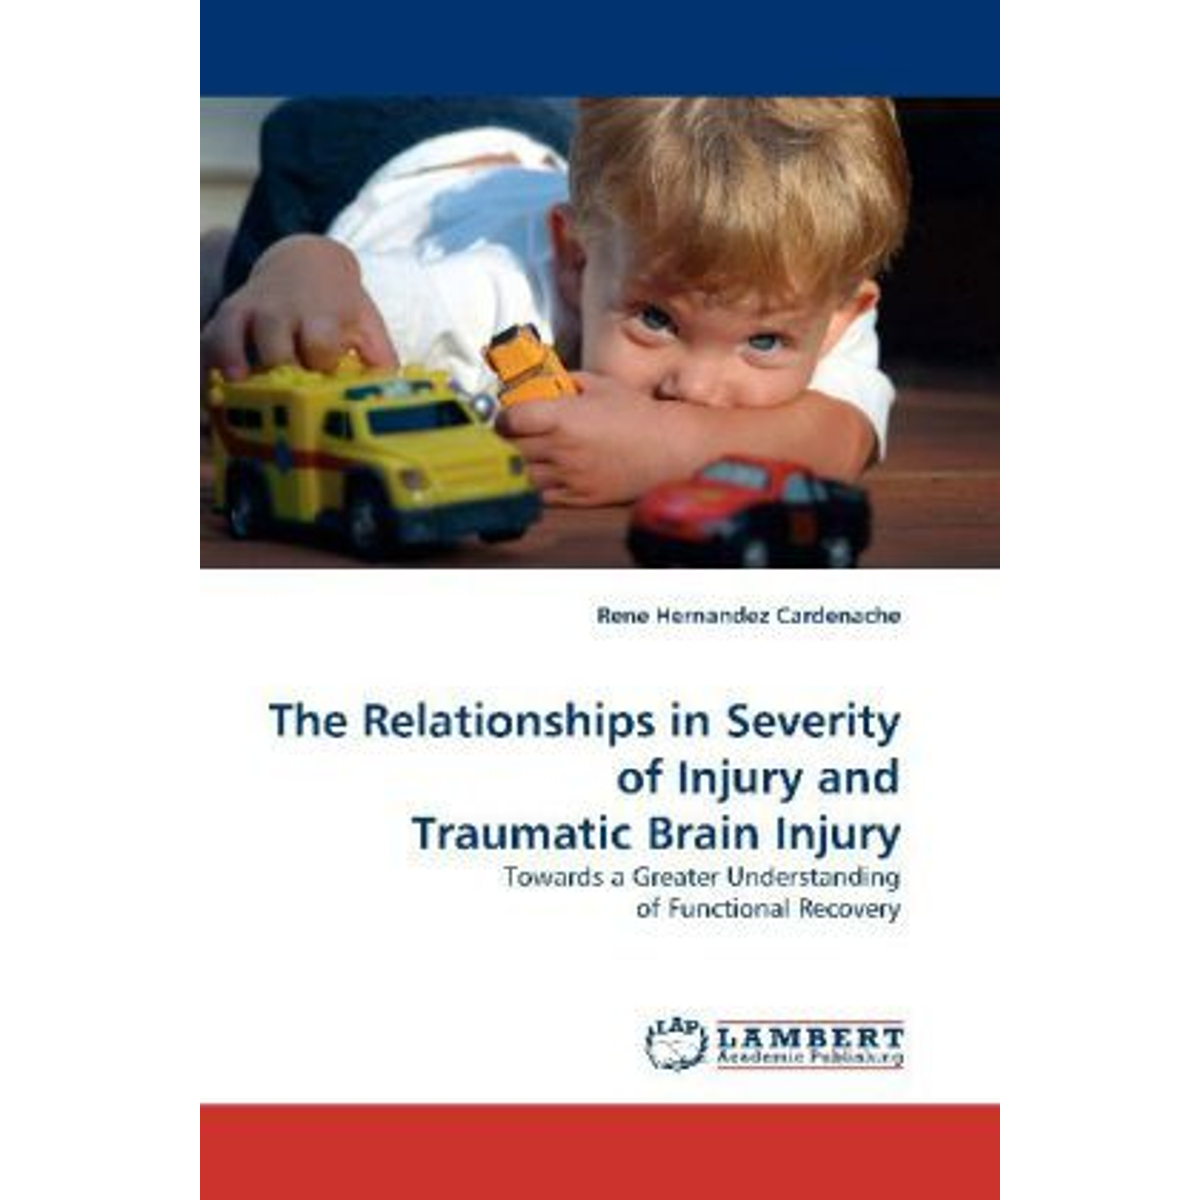 The Relationships in Severity of Injury and Traumatic Brain Injury - Towards a Greater Understanding of Functional Recovery